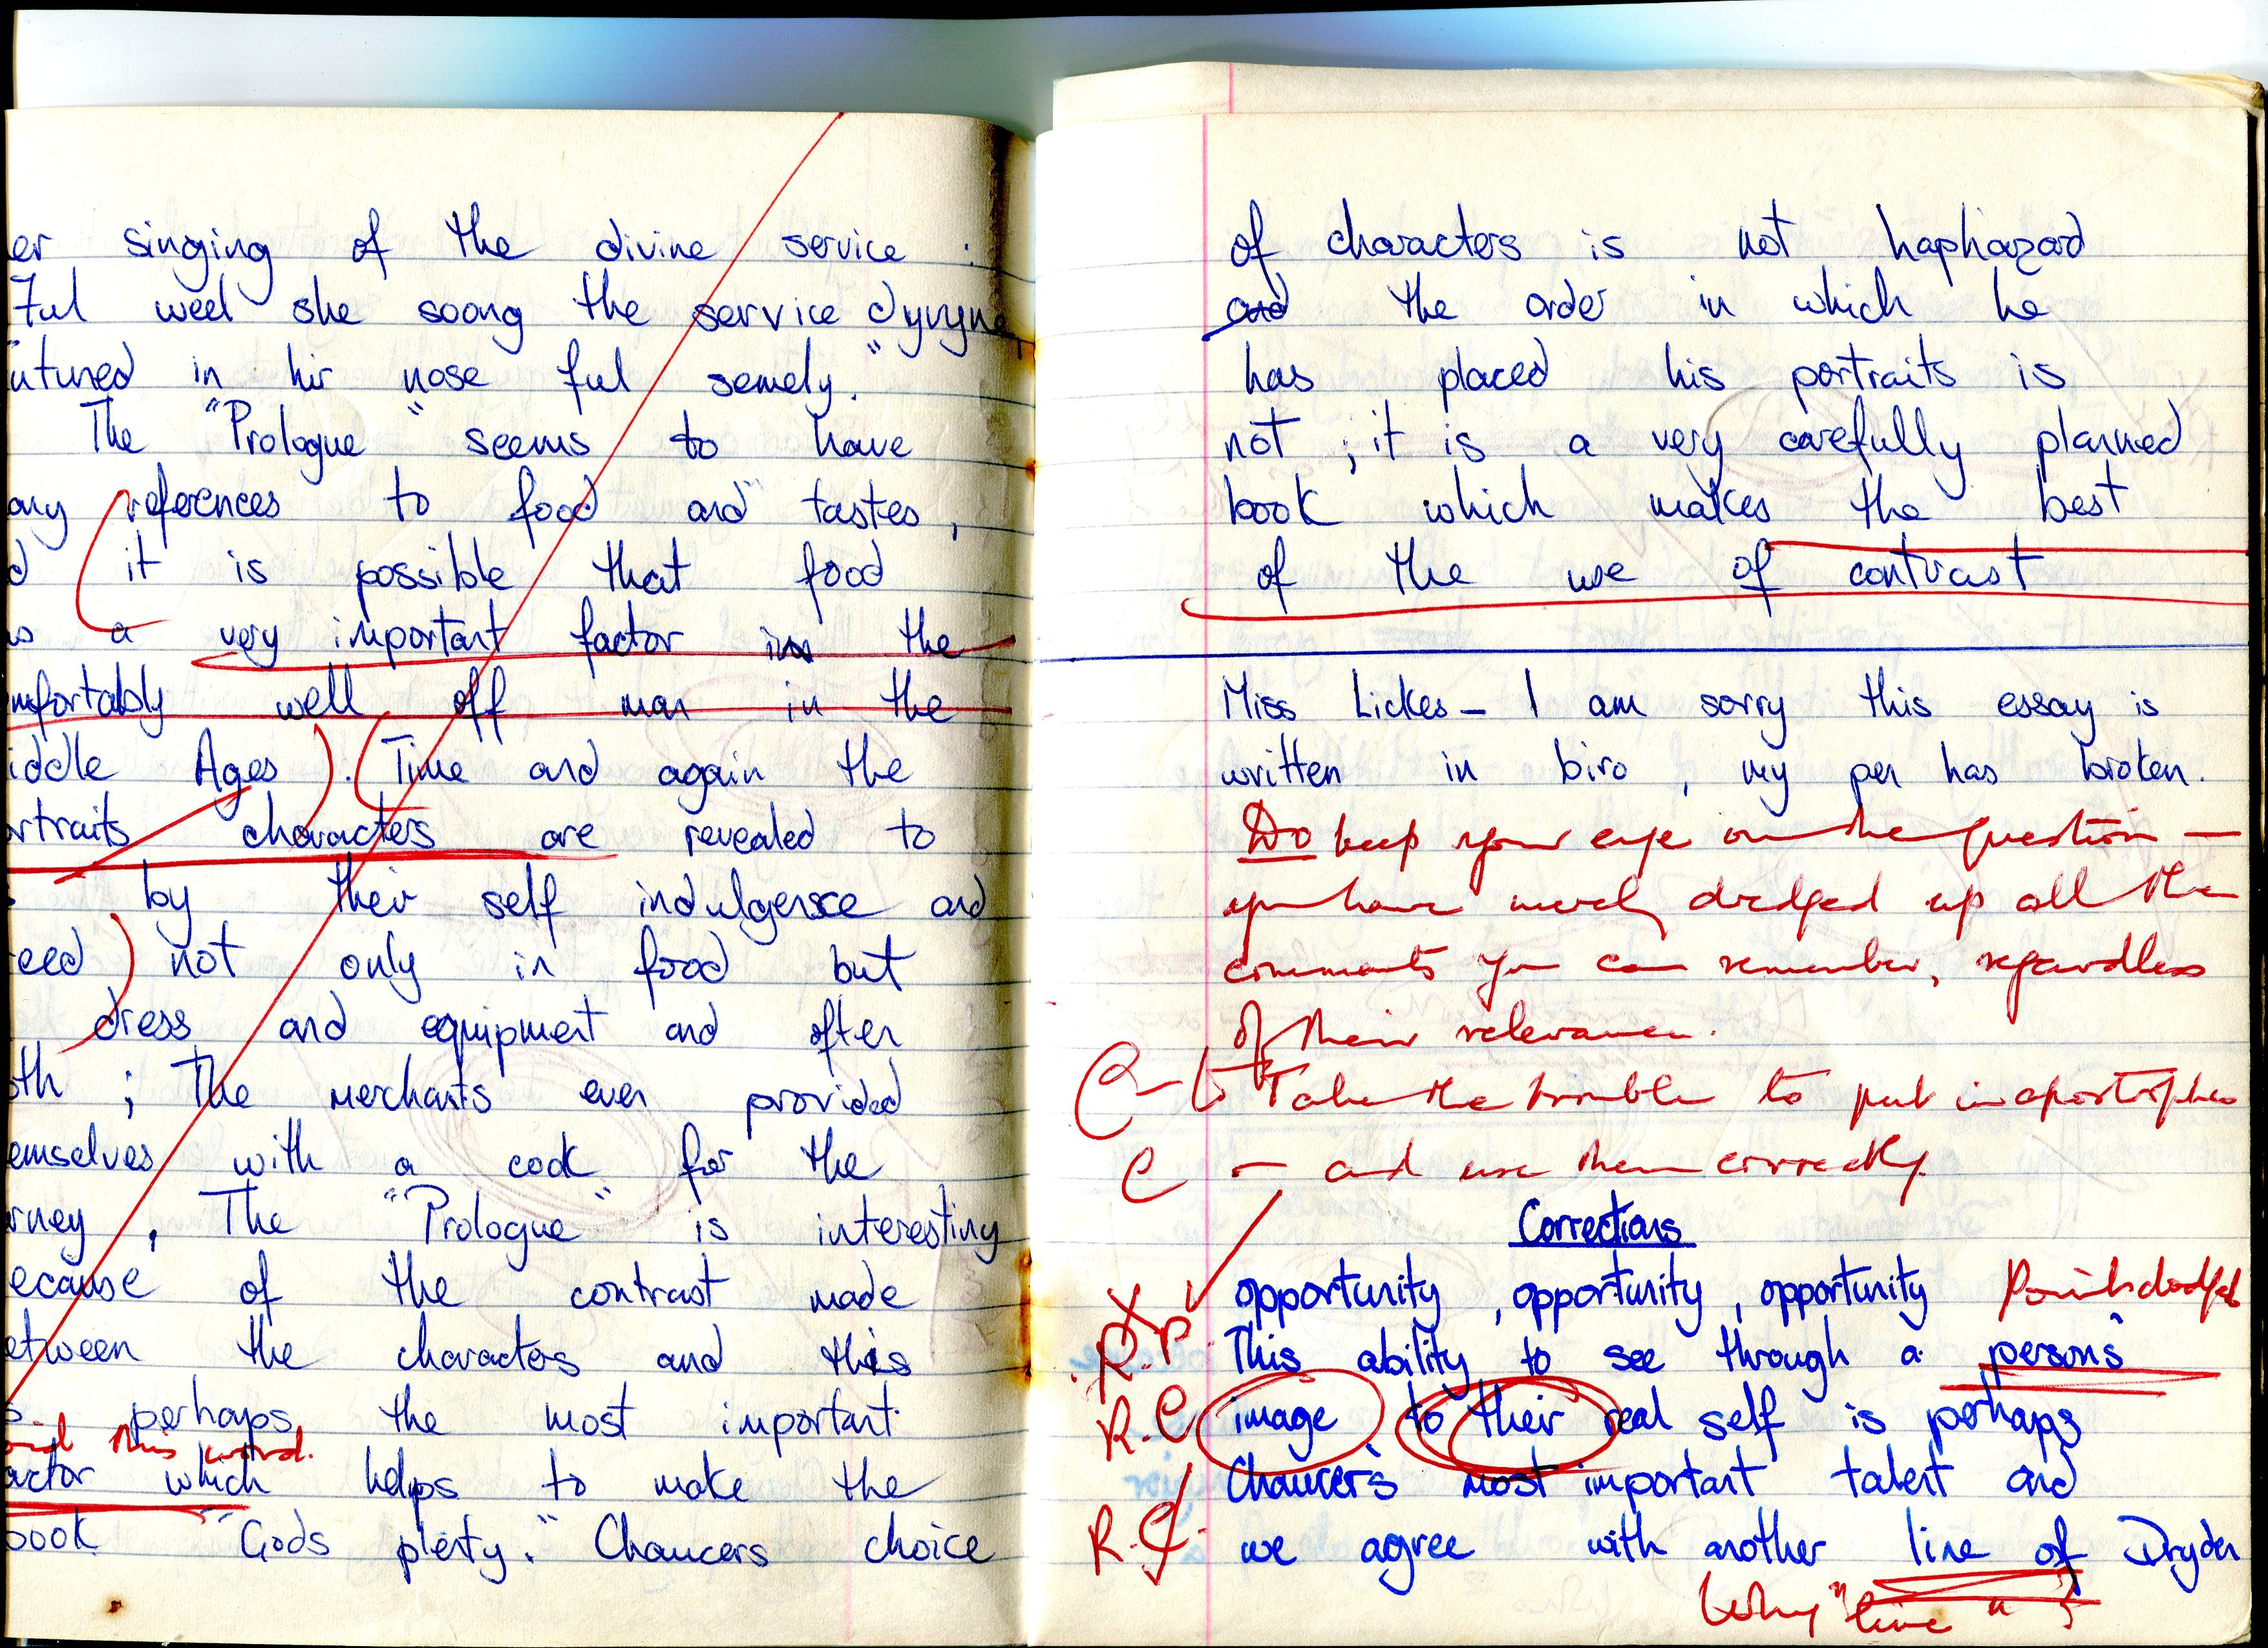 Extract from a pupil's essay with corrections, circa 1966